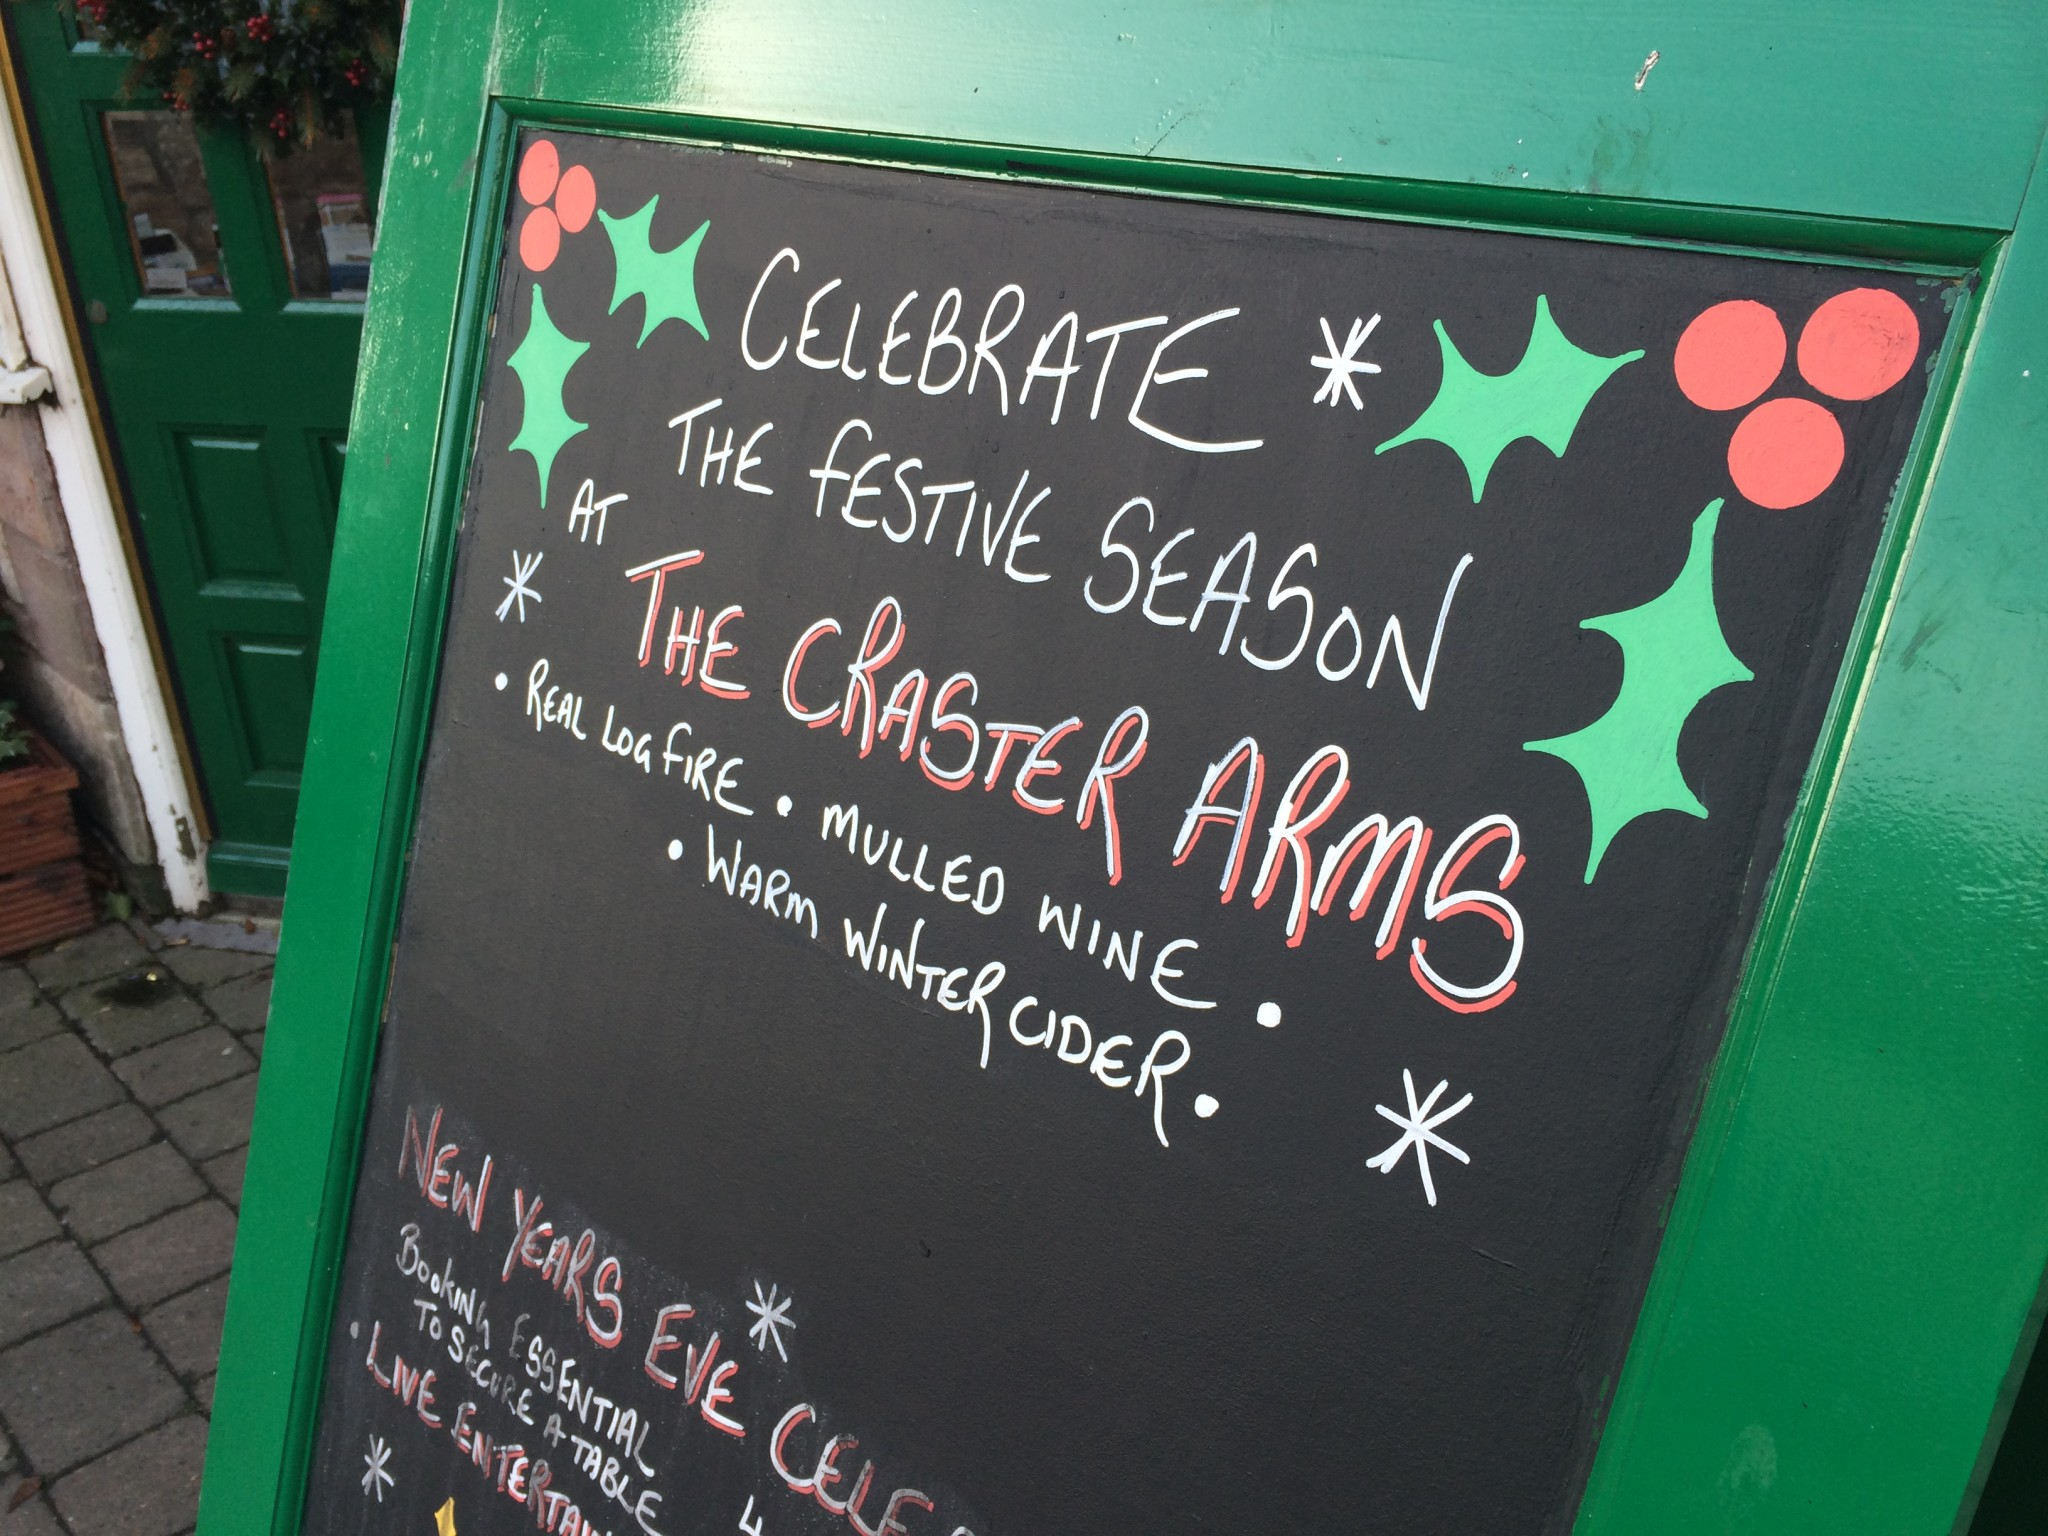 Christmas at the Craster Arms looked good!